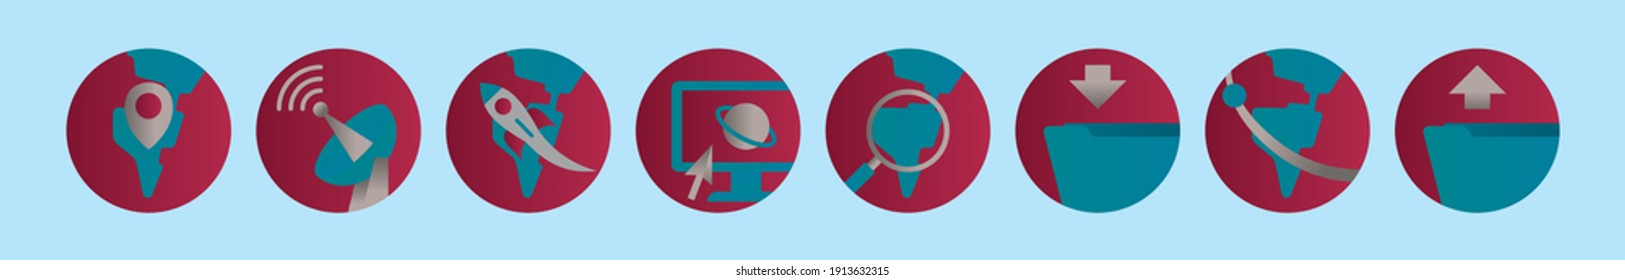 set of internet cartoon icon design template with various models. modern vector illustration isolated on blue background